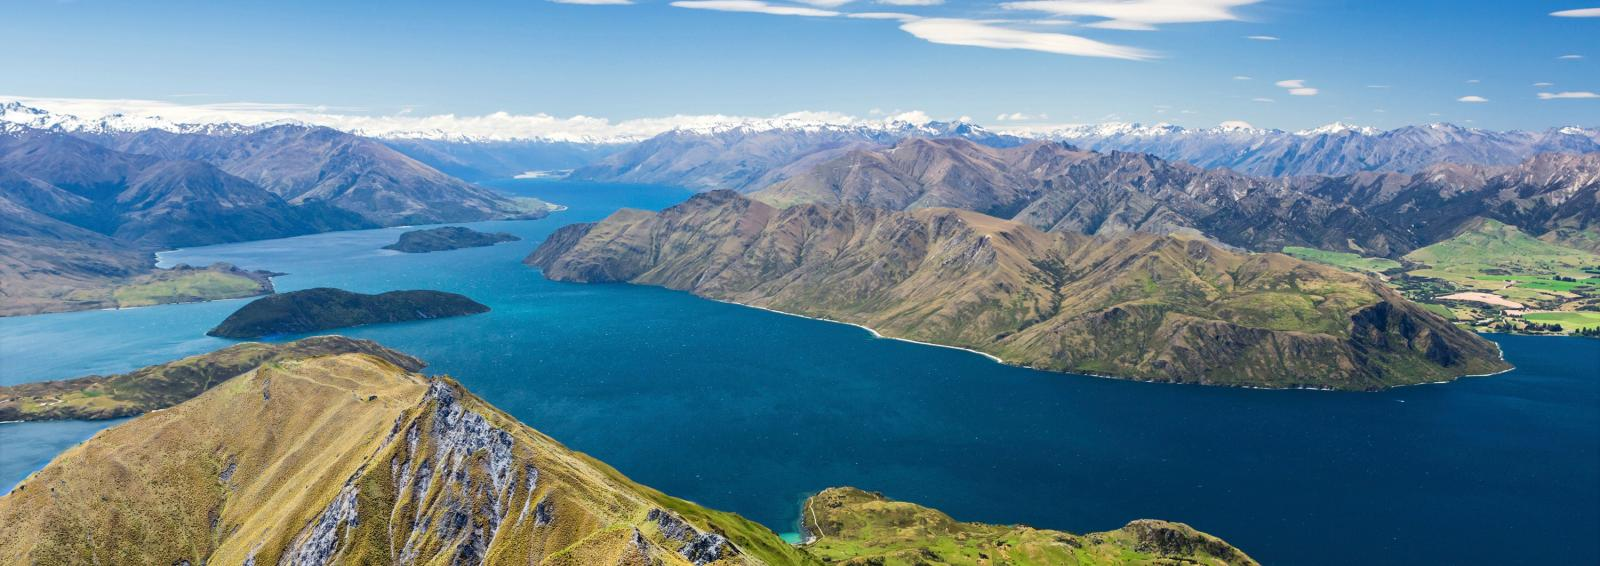 How to Hire Filipino Workers for New Zealand?